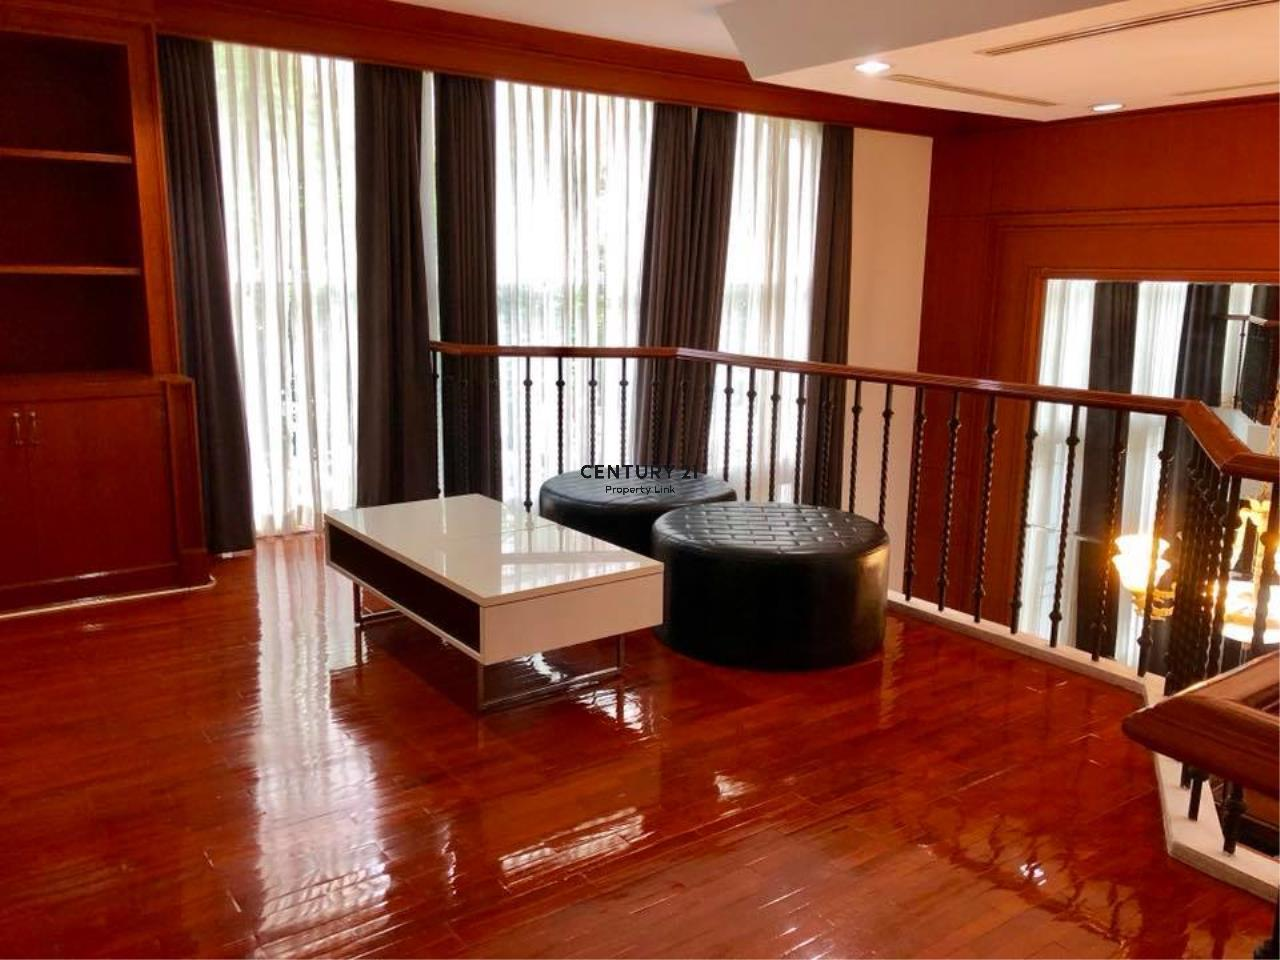 Century21 Property Link Agency's 37-TH-61047 Townhouse in Thonglor for Rent 5